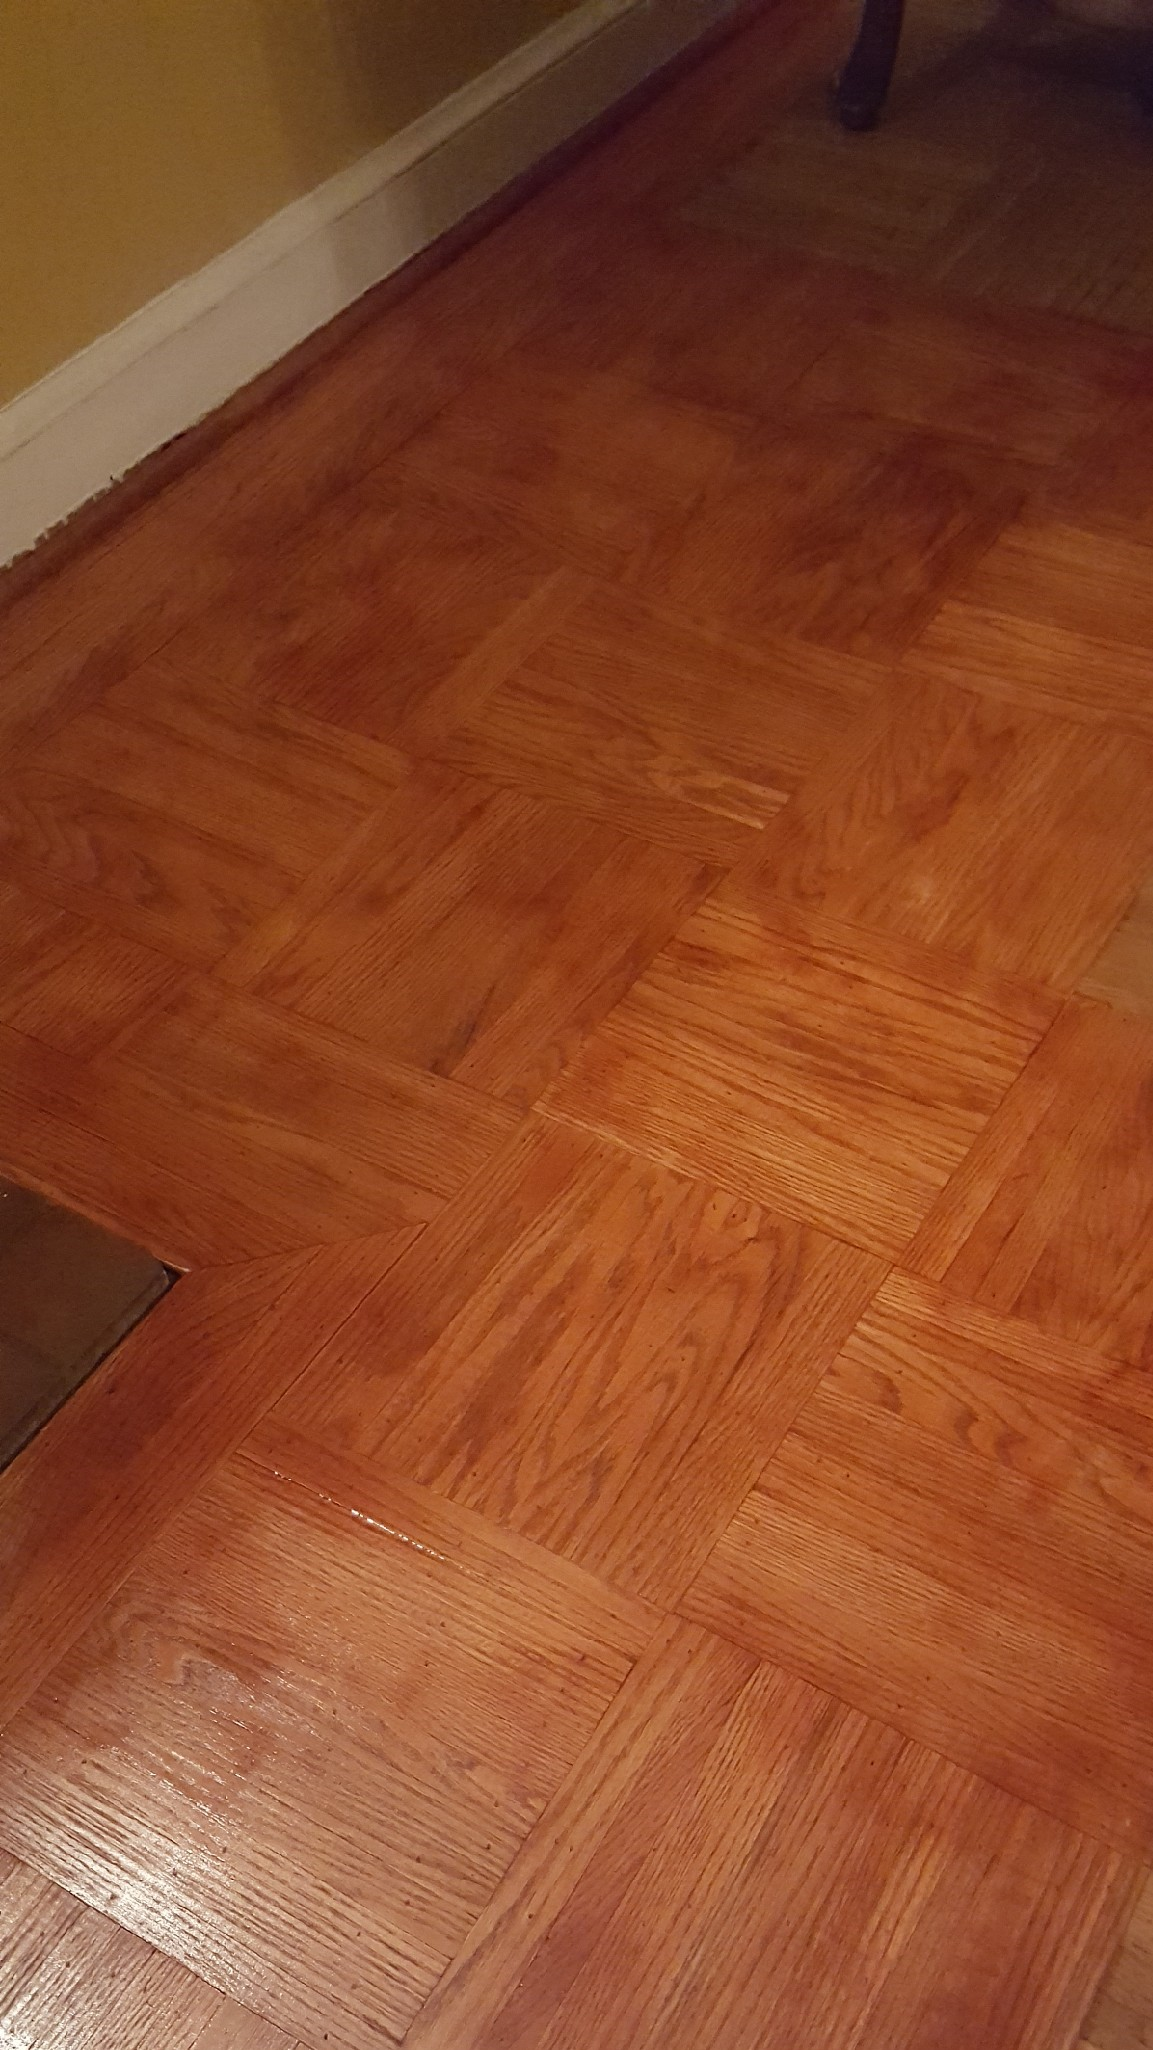 Floor replaced with custom 1x12 fillets - Copy